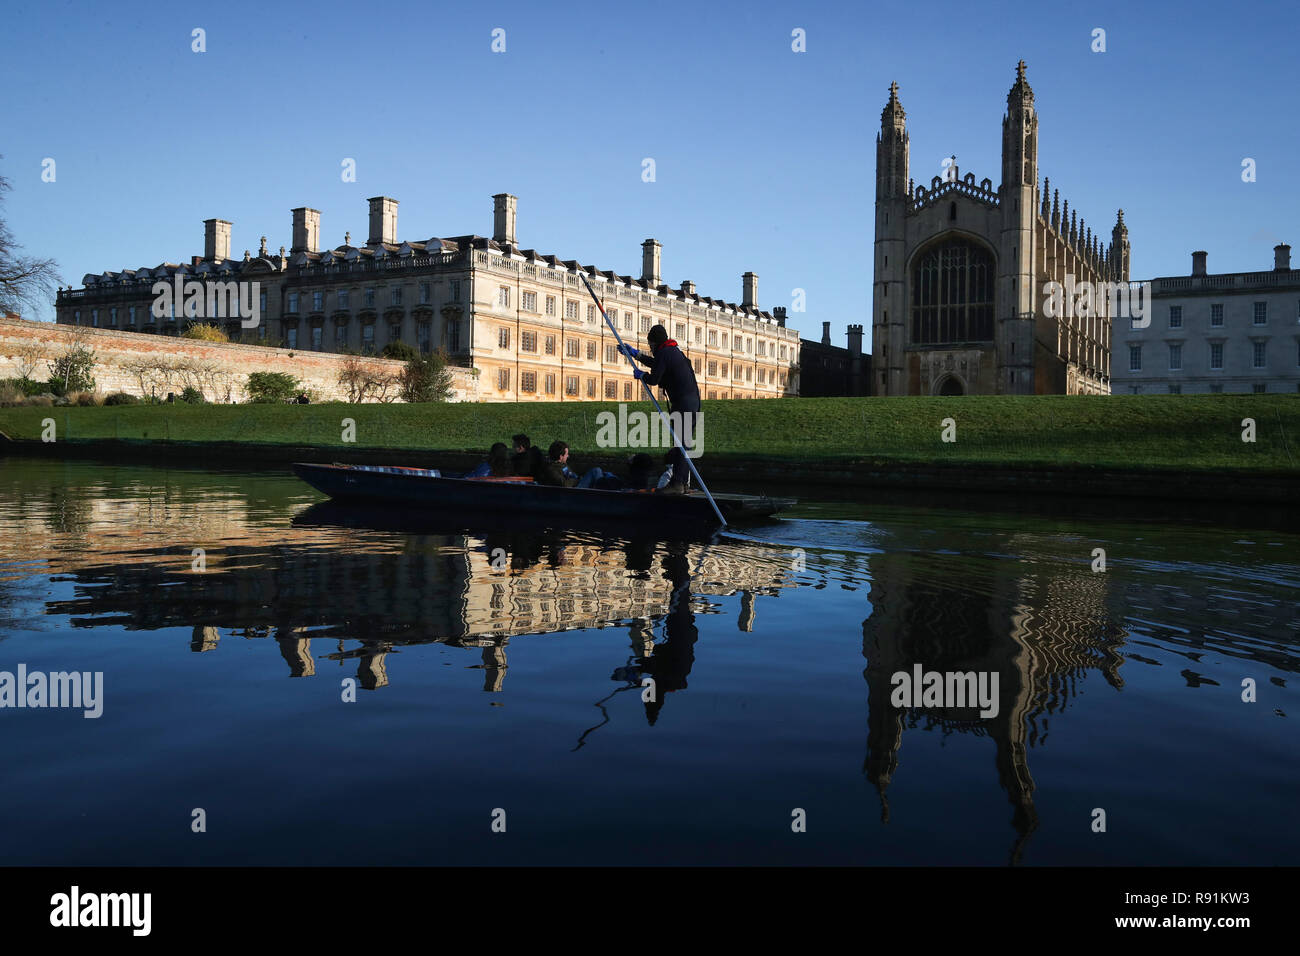 A punt chauffeur makes his way  along the river Cam in Cambridge. Stock Photo